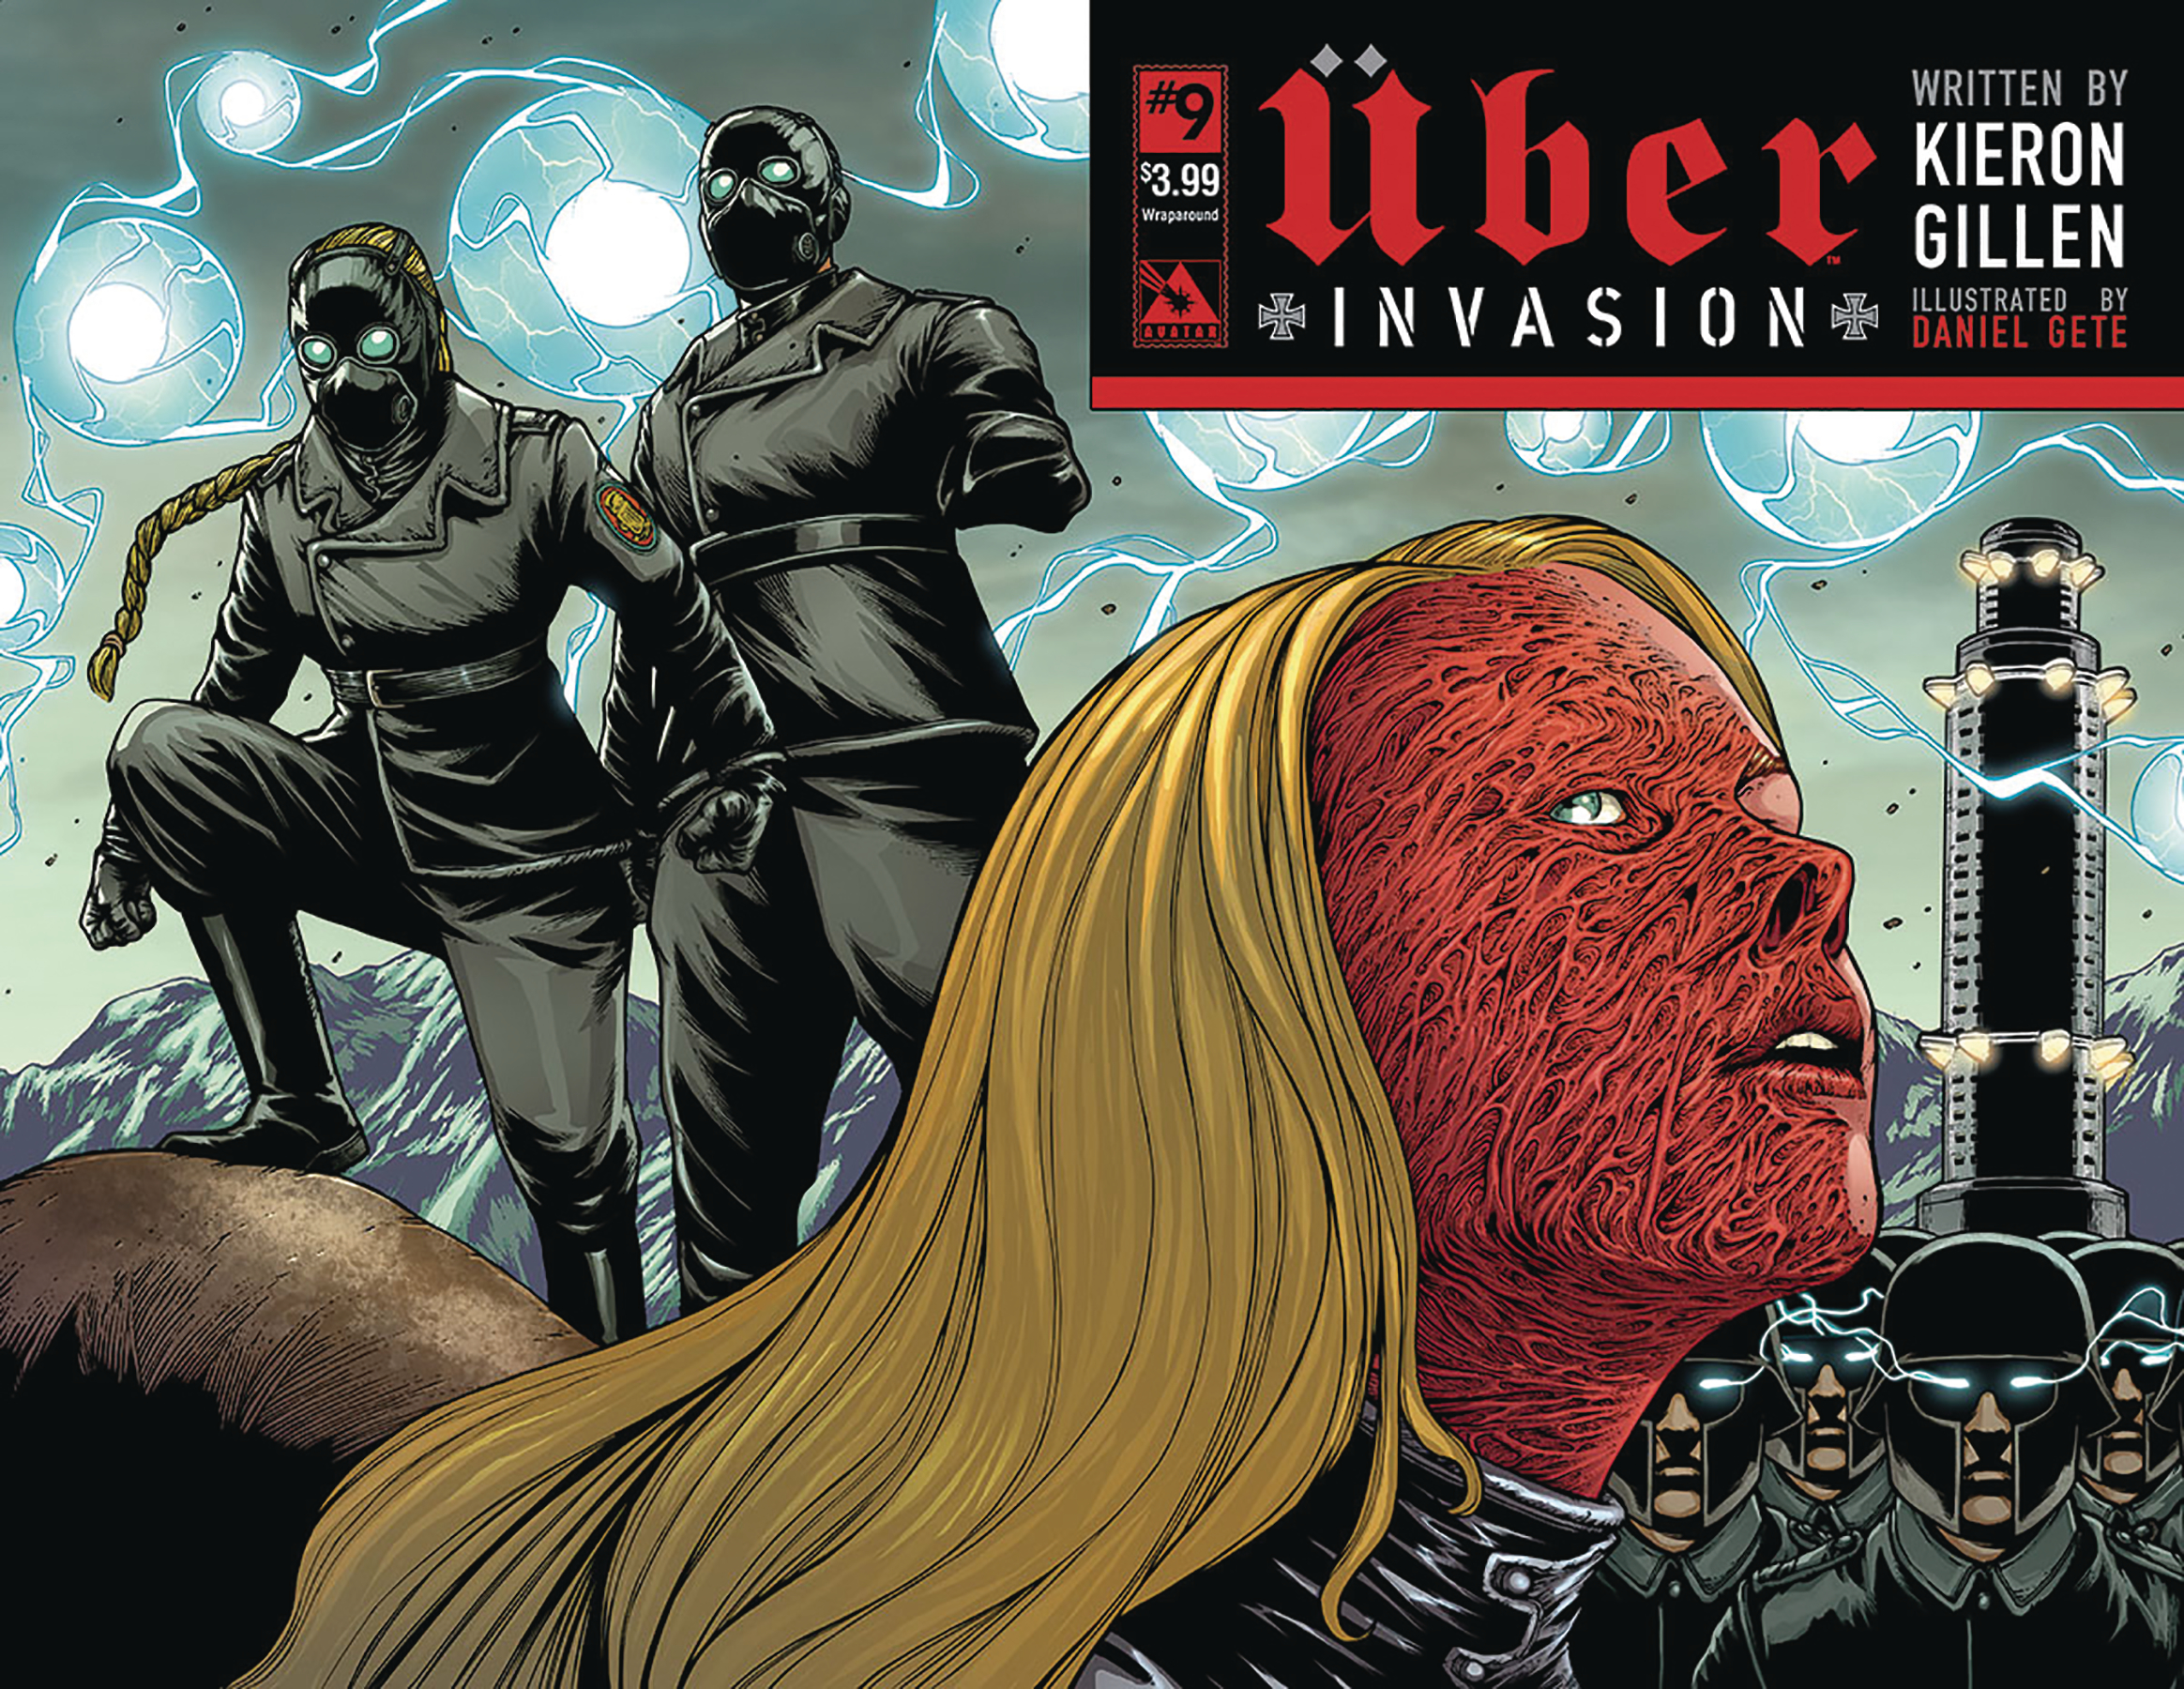 UBER INVASION #9 WRAP CVR (MR)